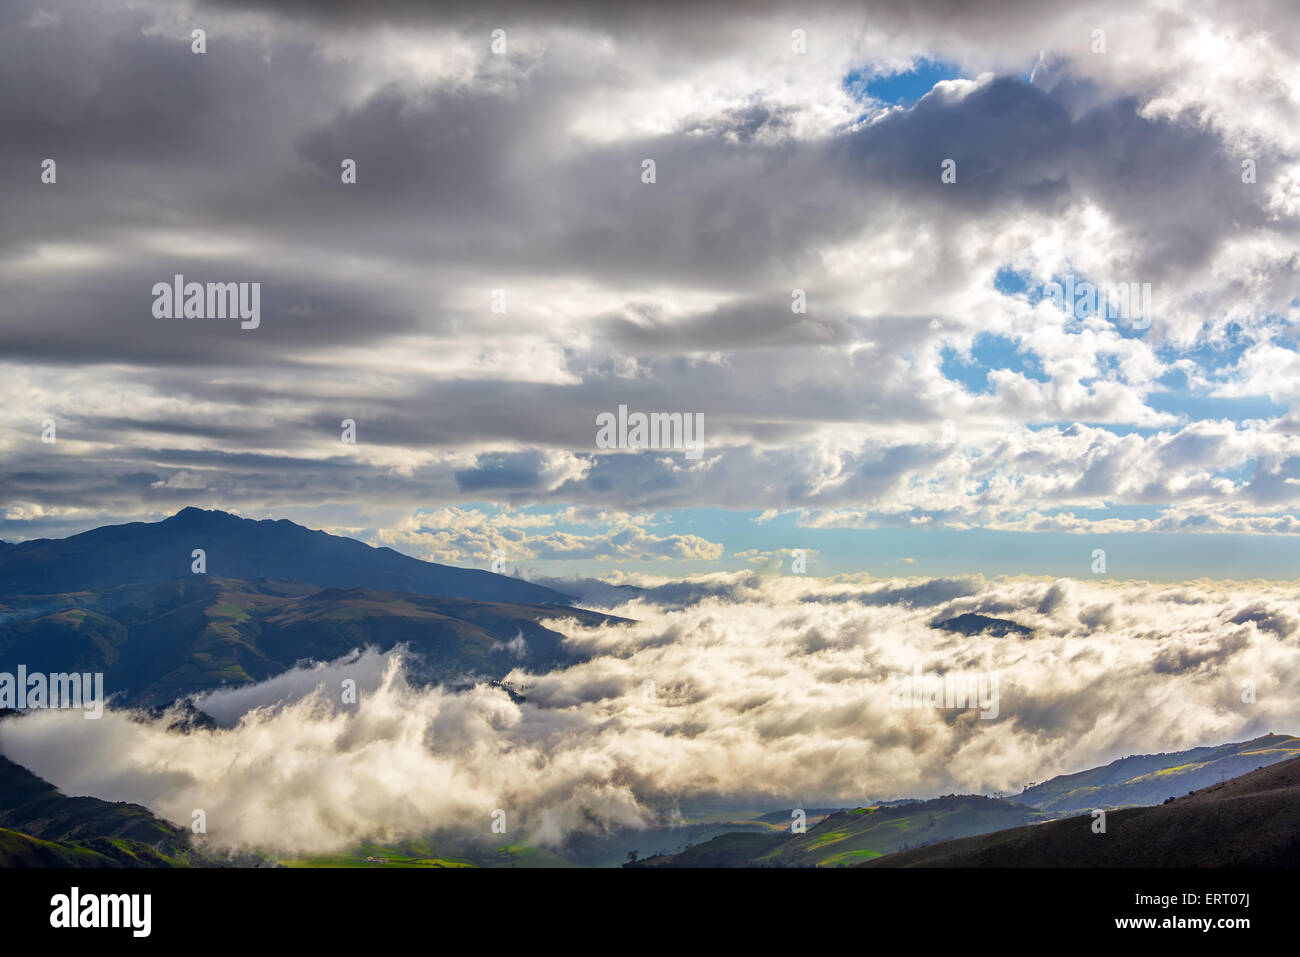 Cloudscape view of the hills on the outskirts of Quito, Ecuador - Stock Image